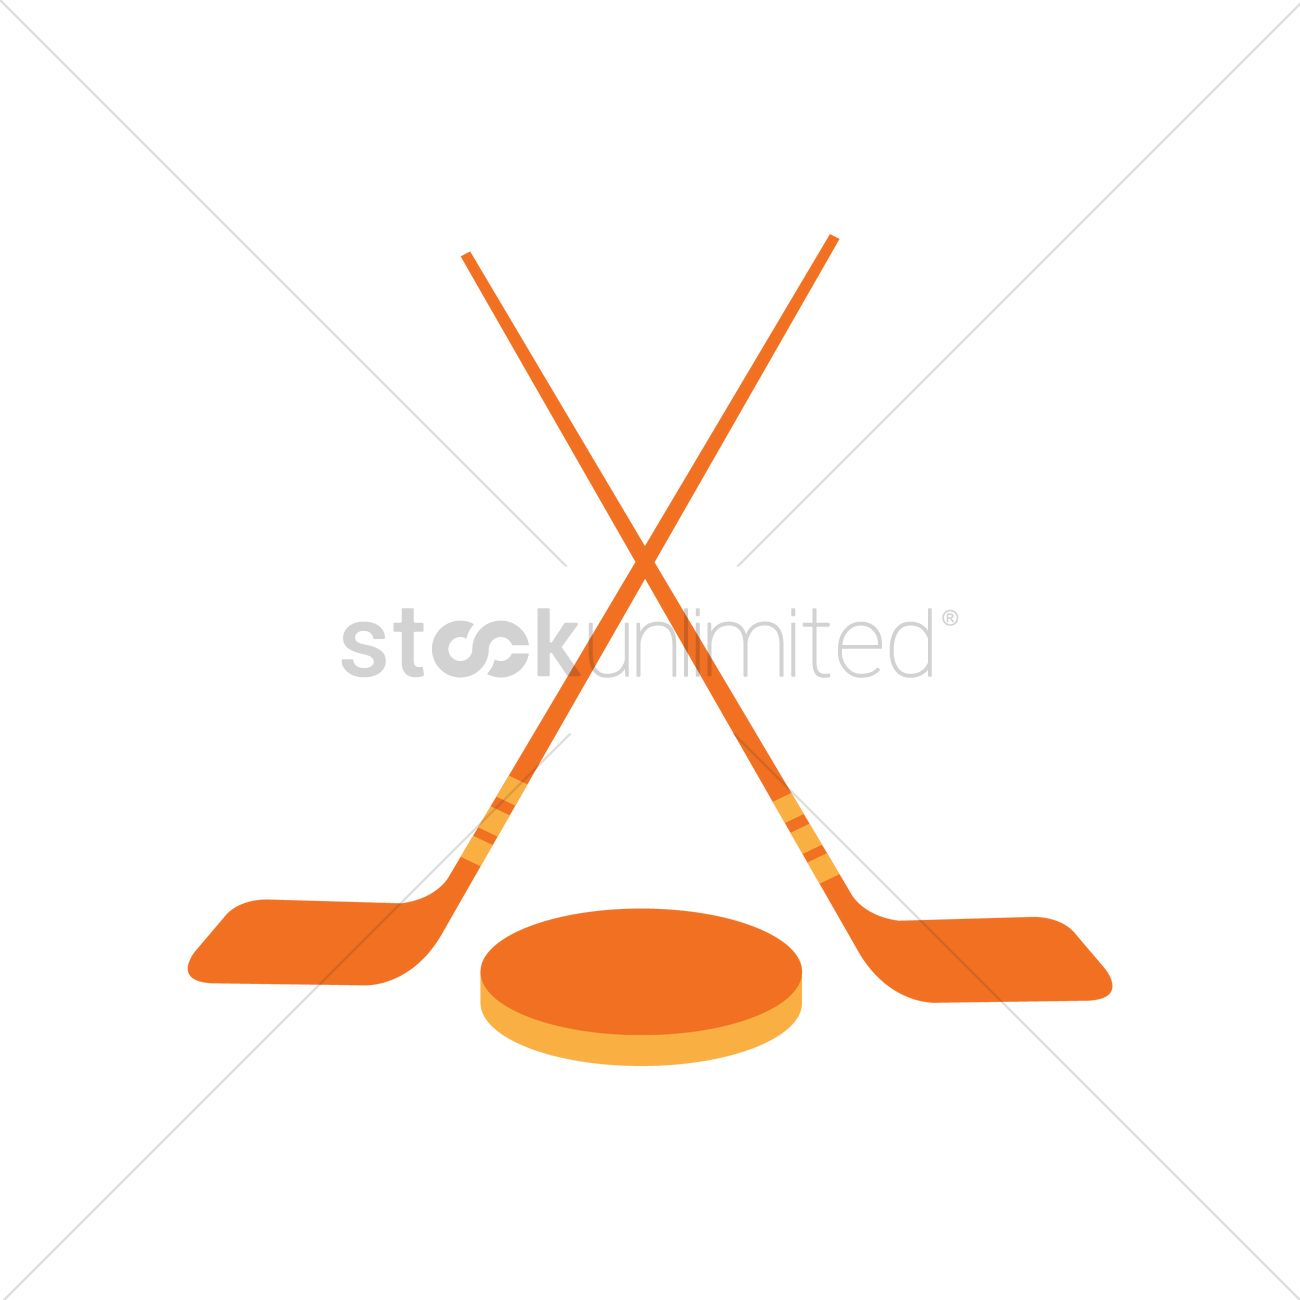 Hockey puck and stick clipart